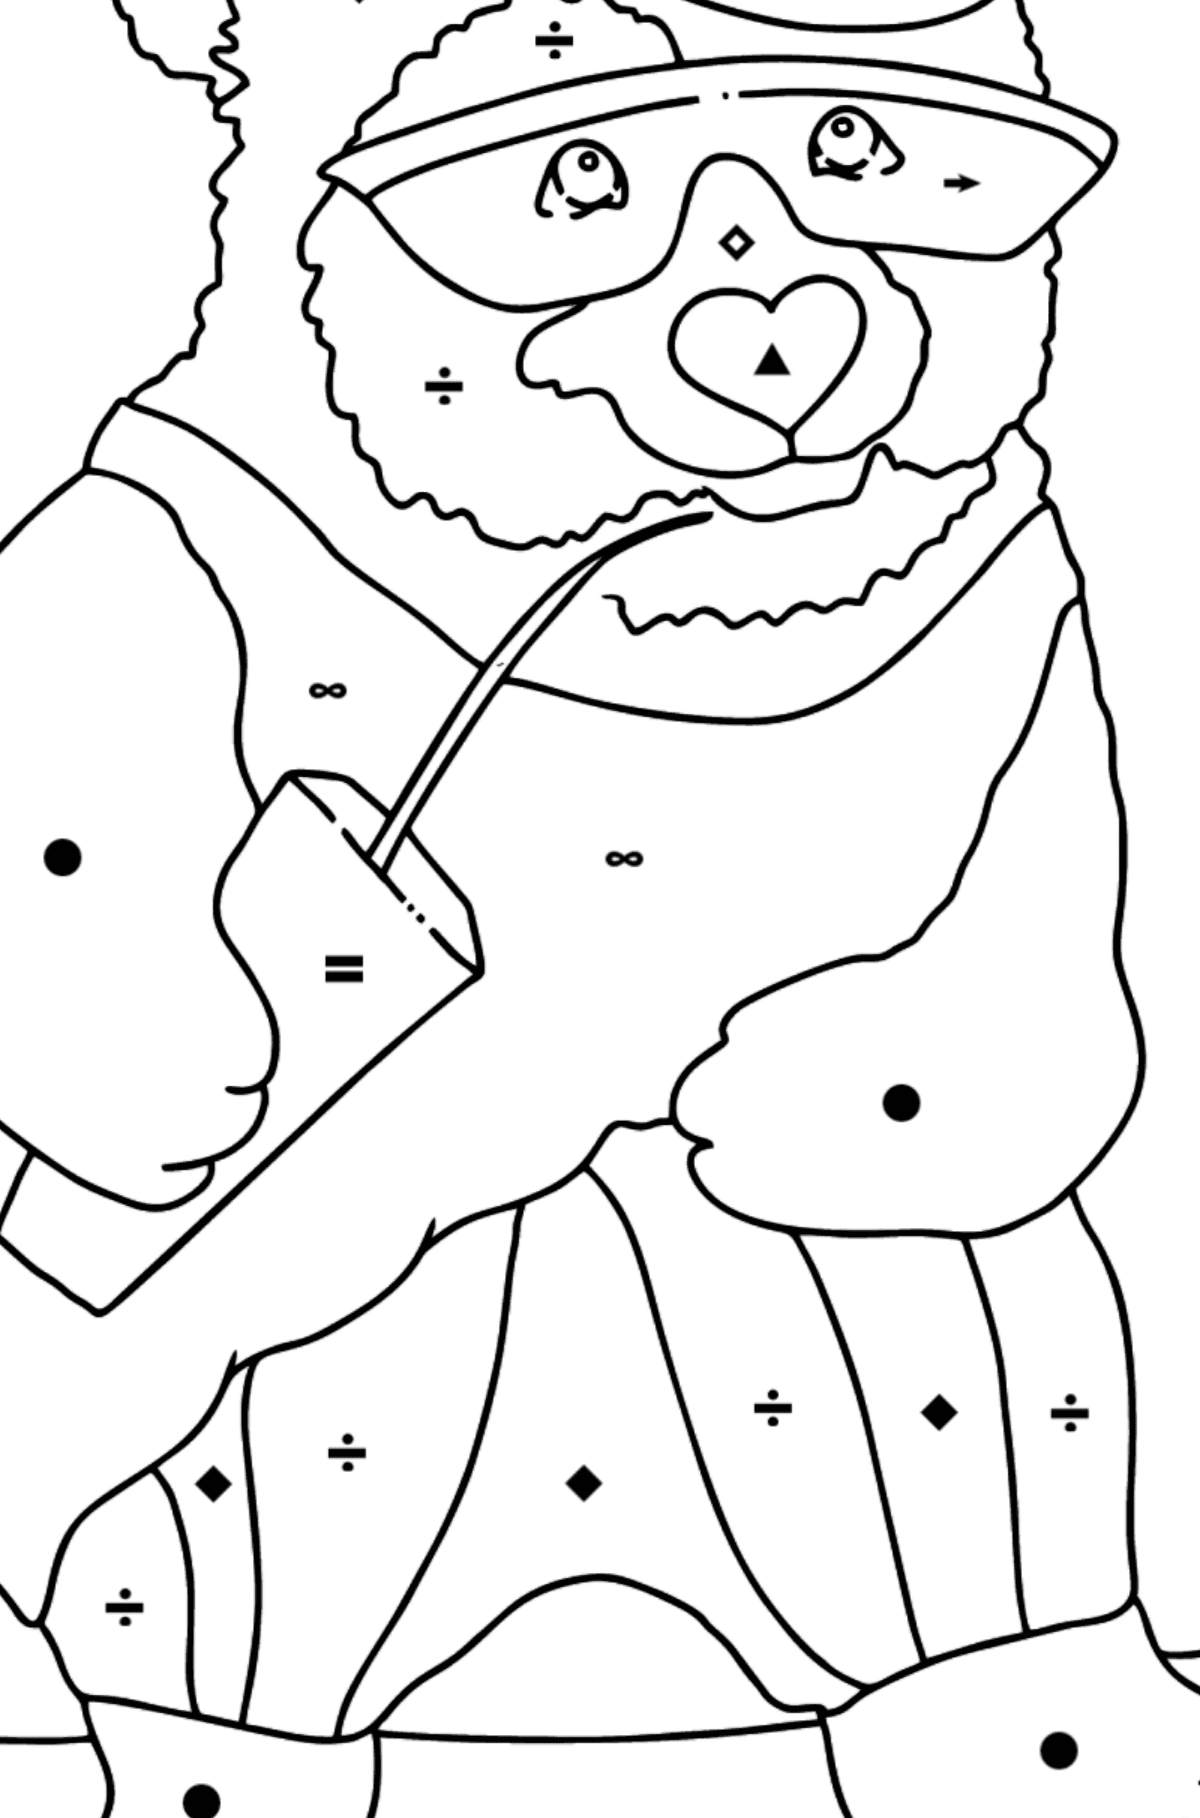 Coloring Page - A Panda is Learning to Ride a Skateboard - Coloring by Symbols for Kids